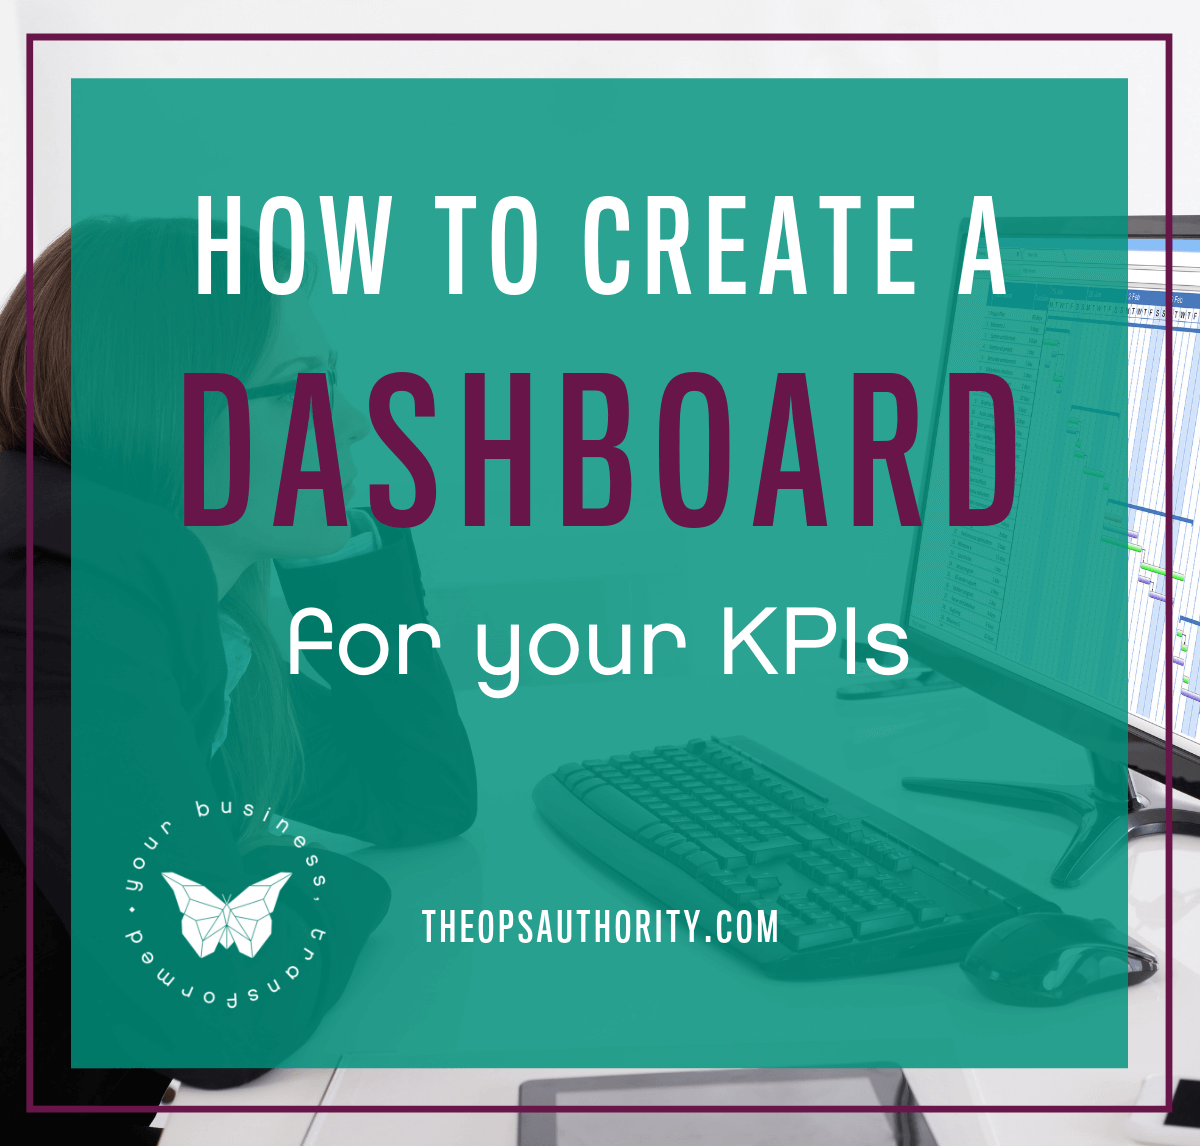 How to create a dashboard for your KPIsfeatured 1